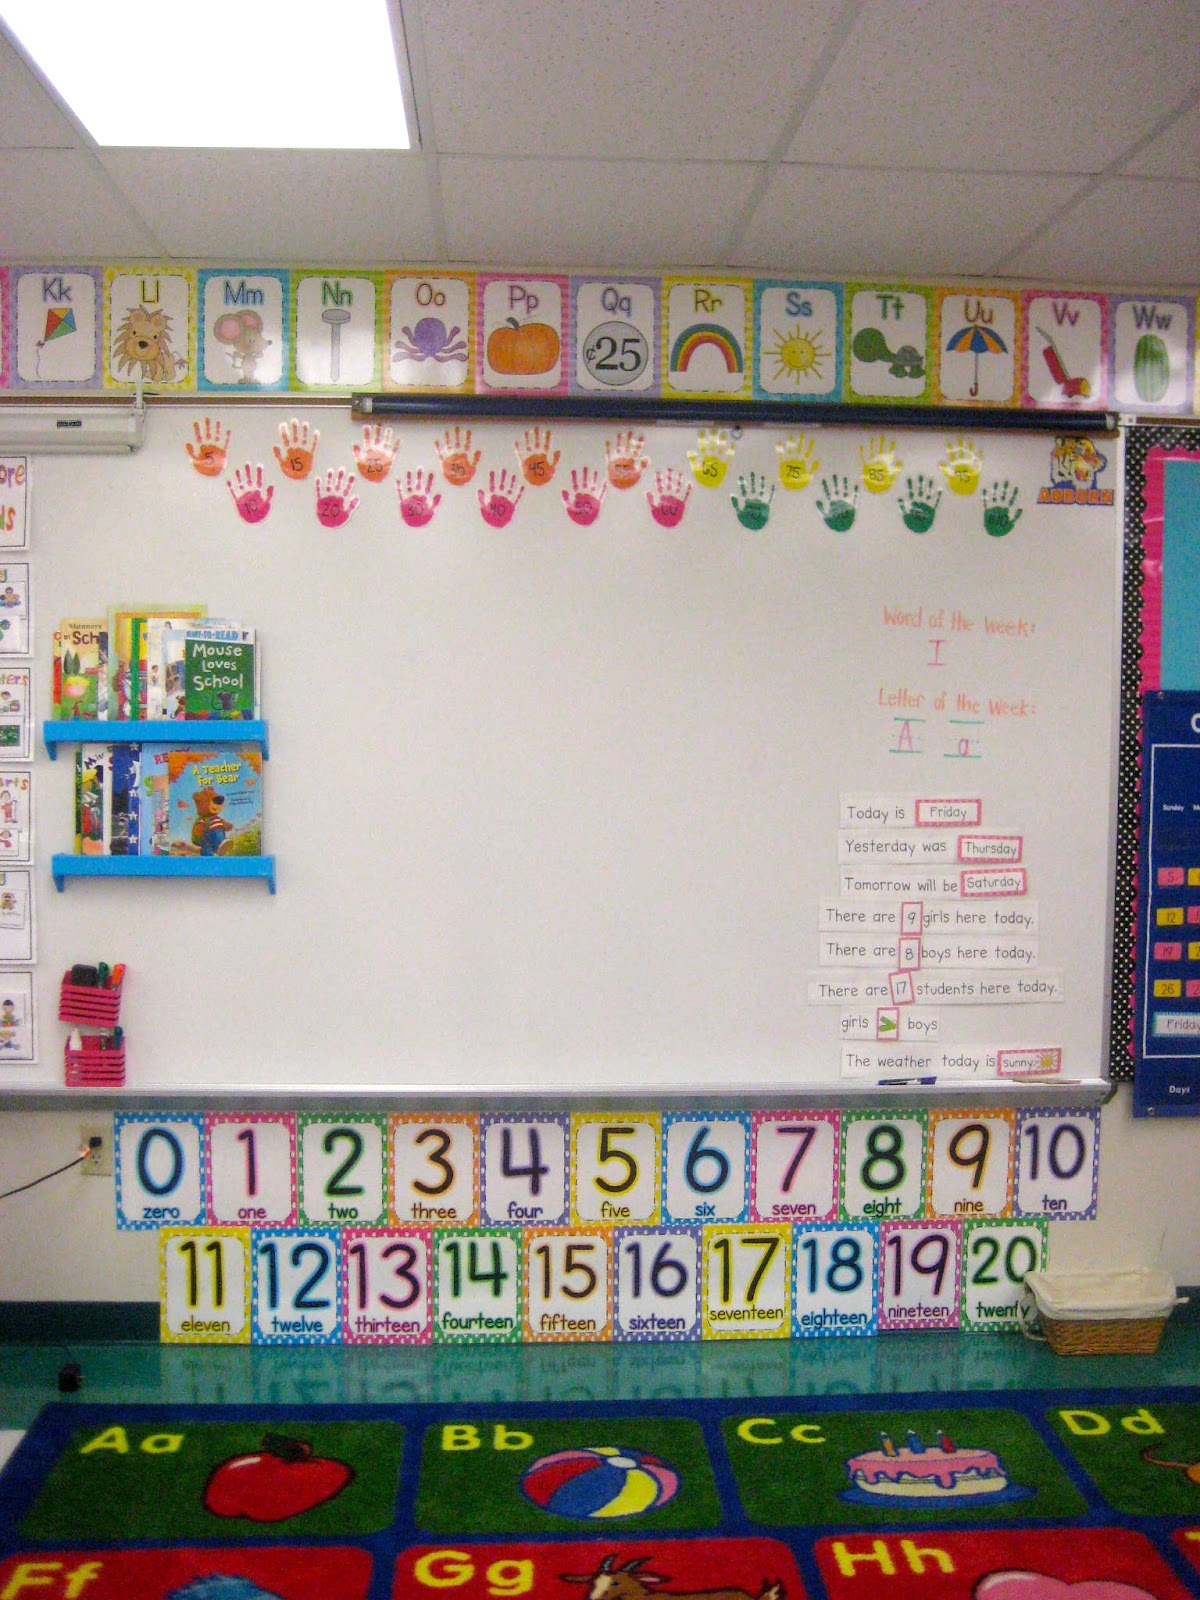 Kindergarten Calendar Interactive Whiteboard : Kindergarten smiles august